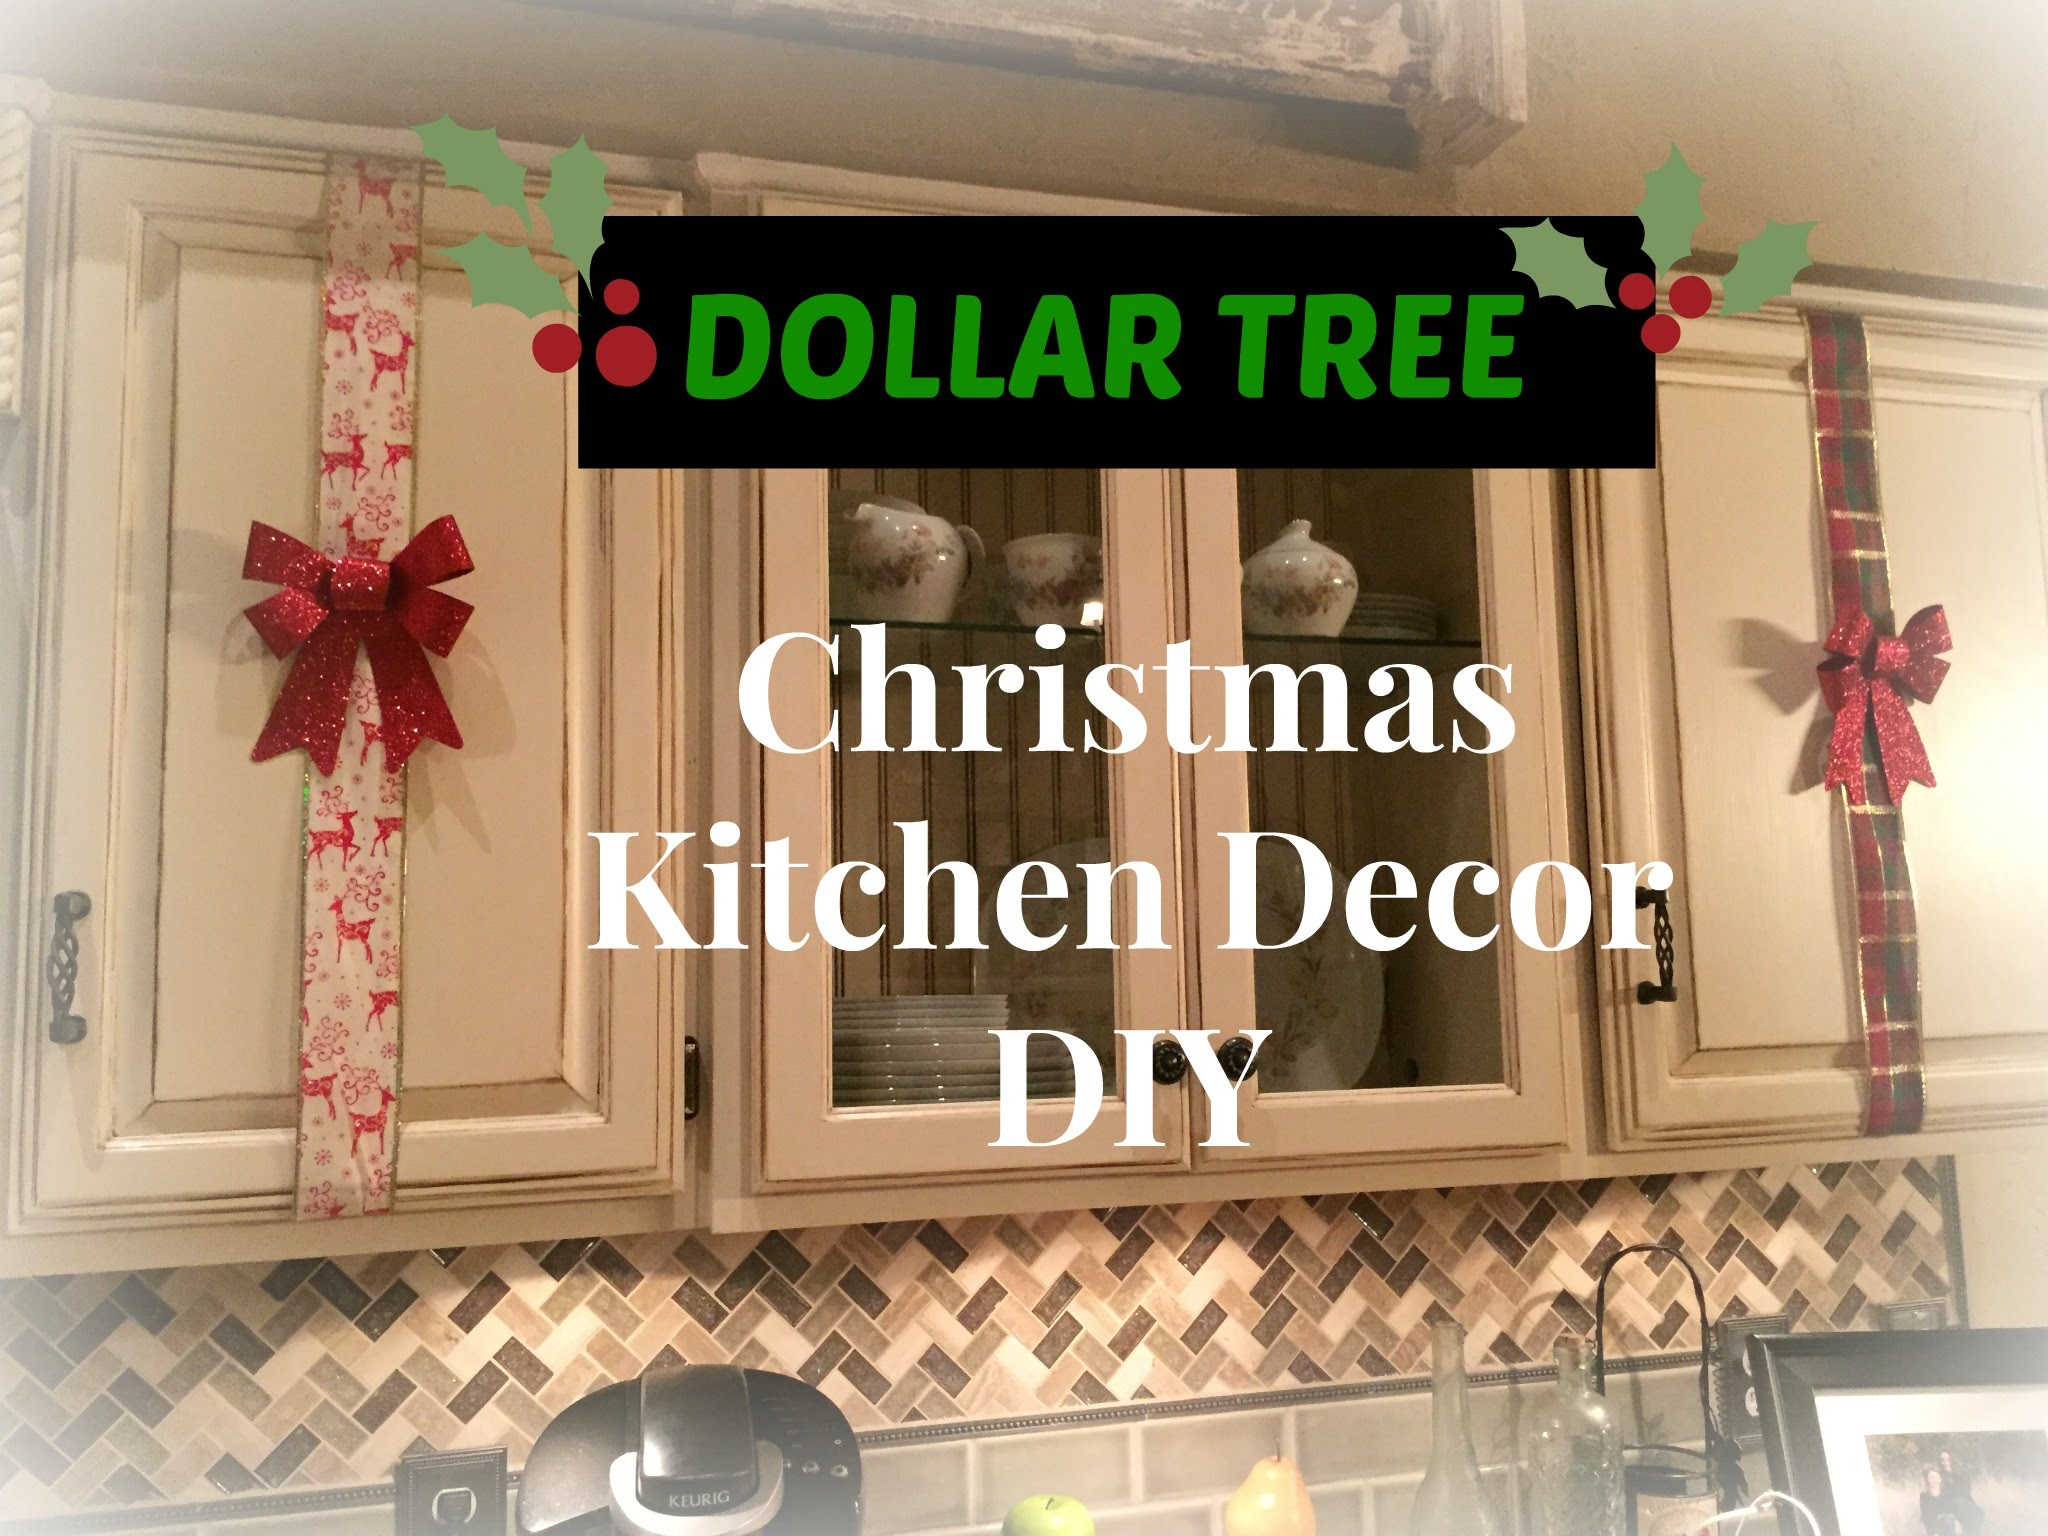 DOLLAR TREE Christmas Kitchen Cabinets Decor DIY – PLAID WEEK Day 3